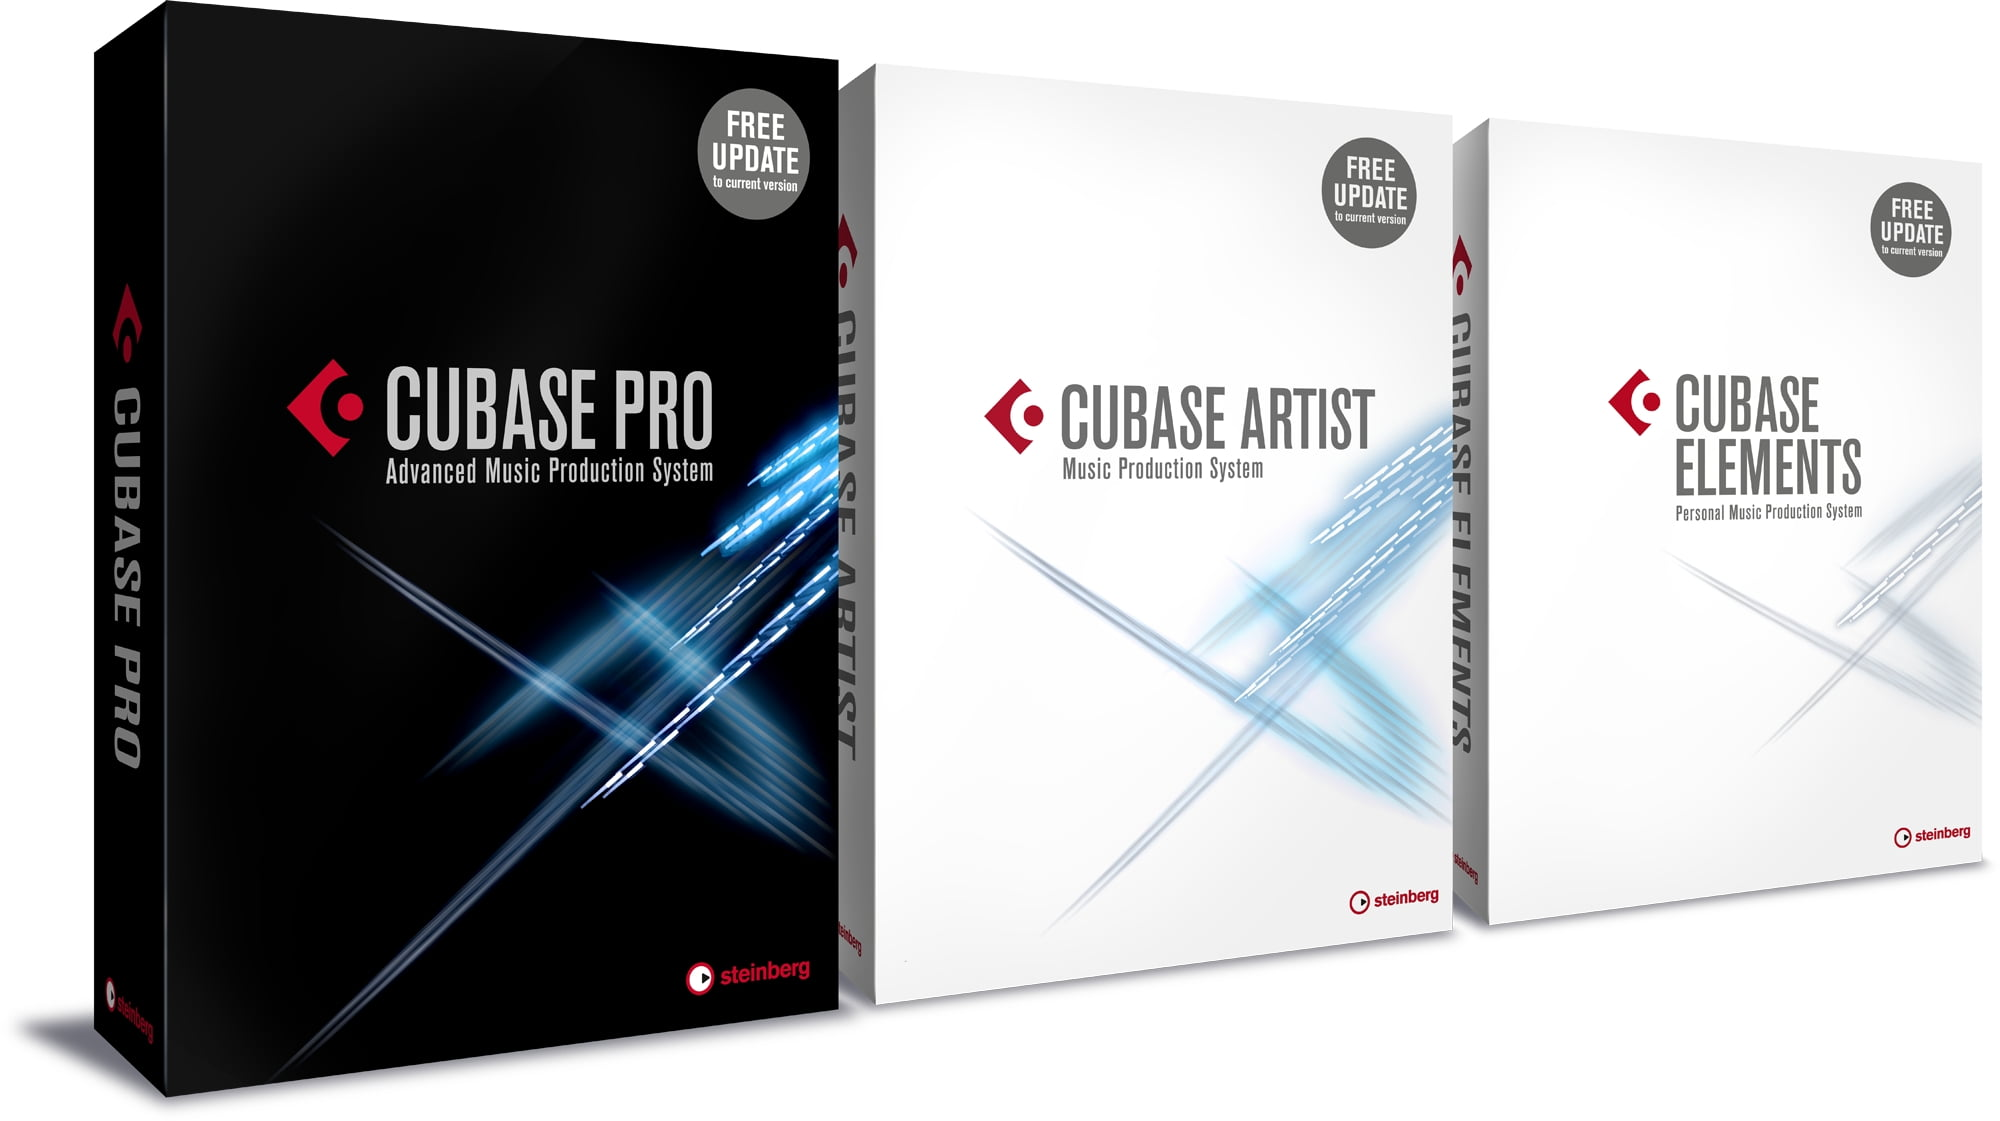 Steinberg launches Cubase Pro 9 DAW software